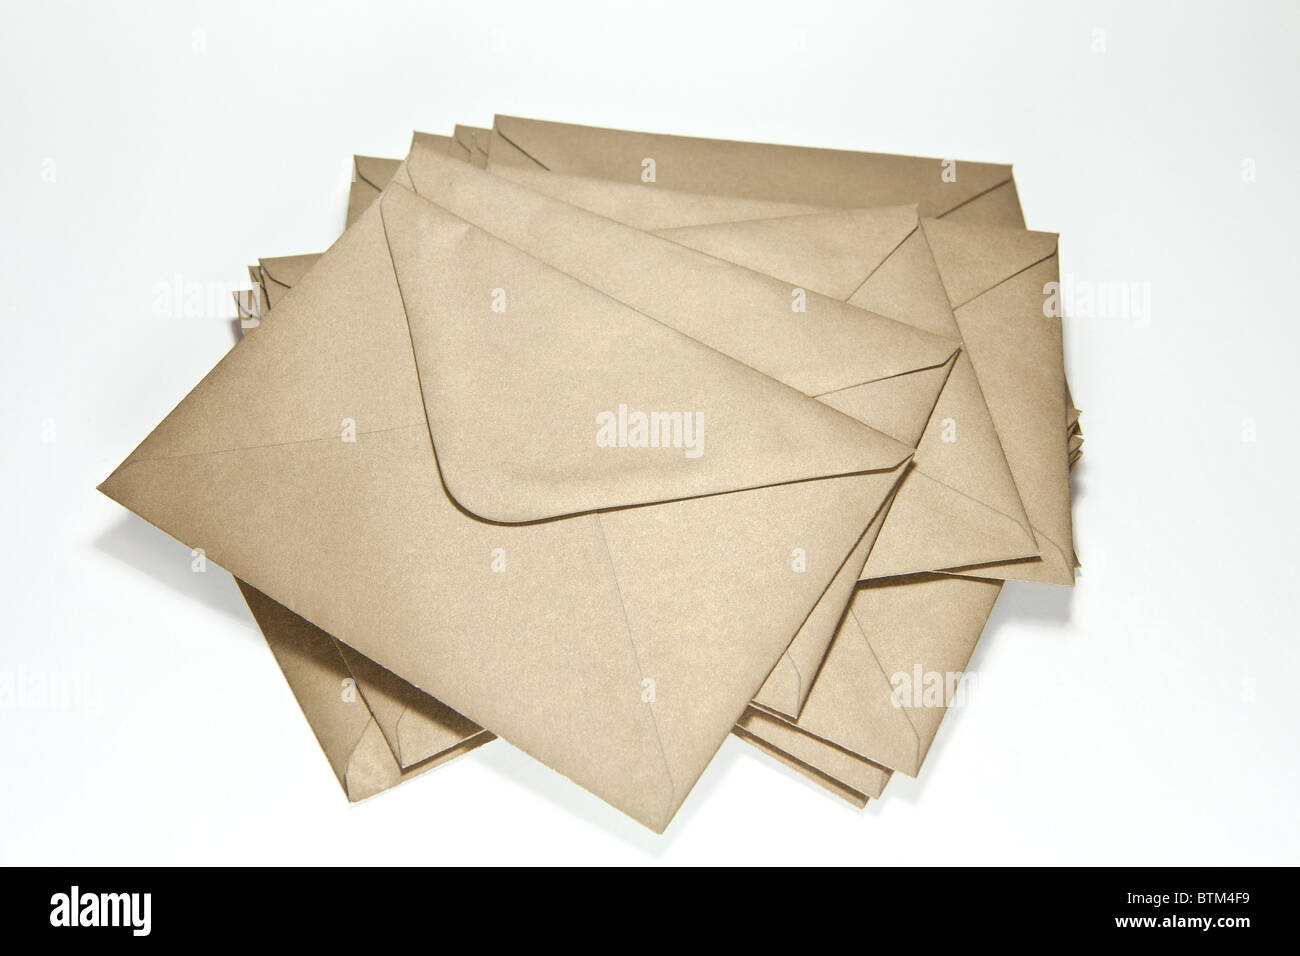 big pile of scattered envelopes - Stock Image